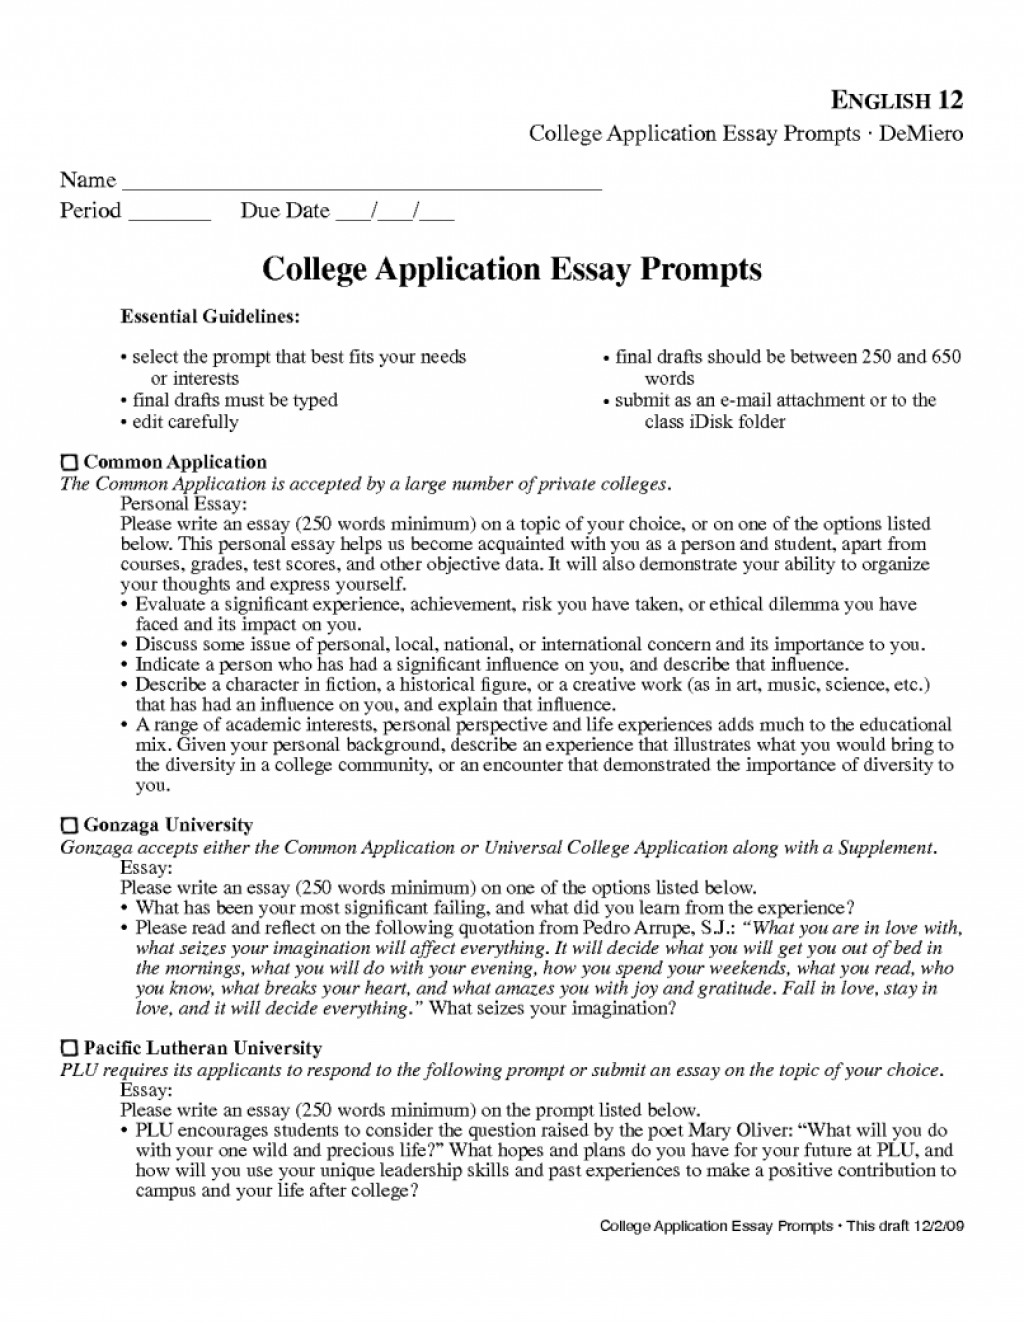 001 Essay Example College Prompts The Common App Poemdoc Or Best Using Quotes In Essays Quotesgram Admission L Ucf Prompt Boston Uc Harvard Texas Mit Unique 2017 Large